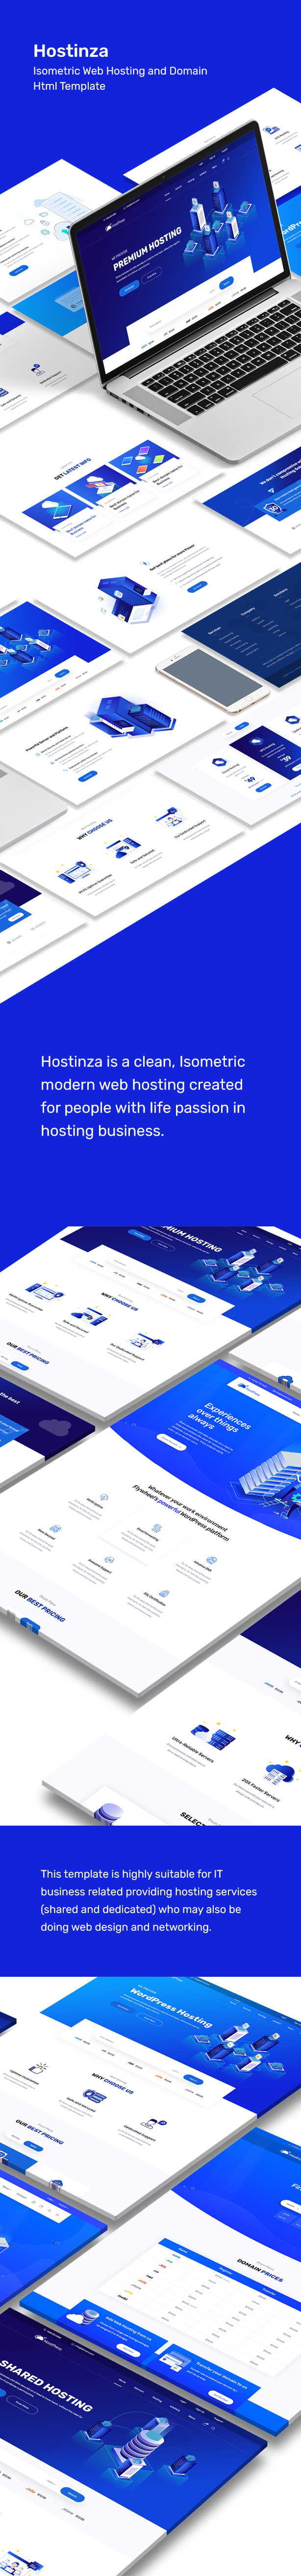 description 4 - Hostinza - Isometric Web Hosting, Domain and WHMCS Html Hosting Template